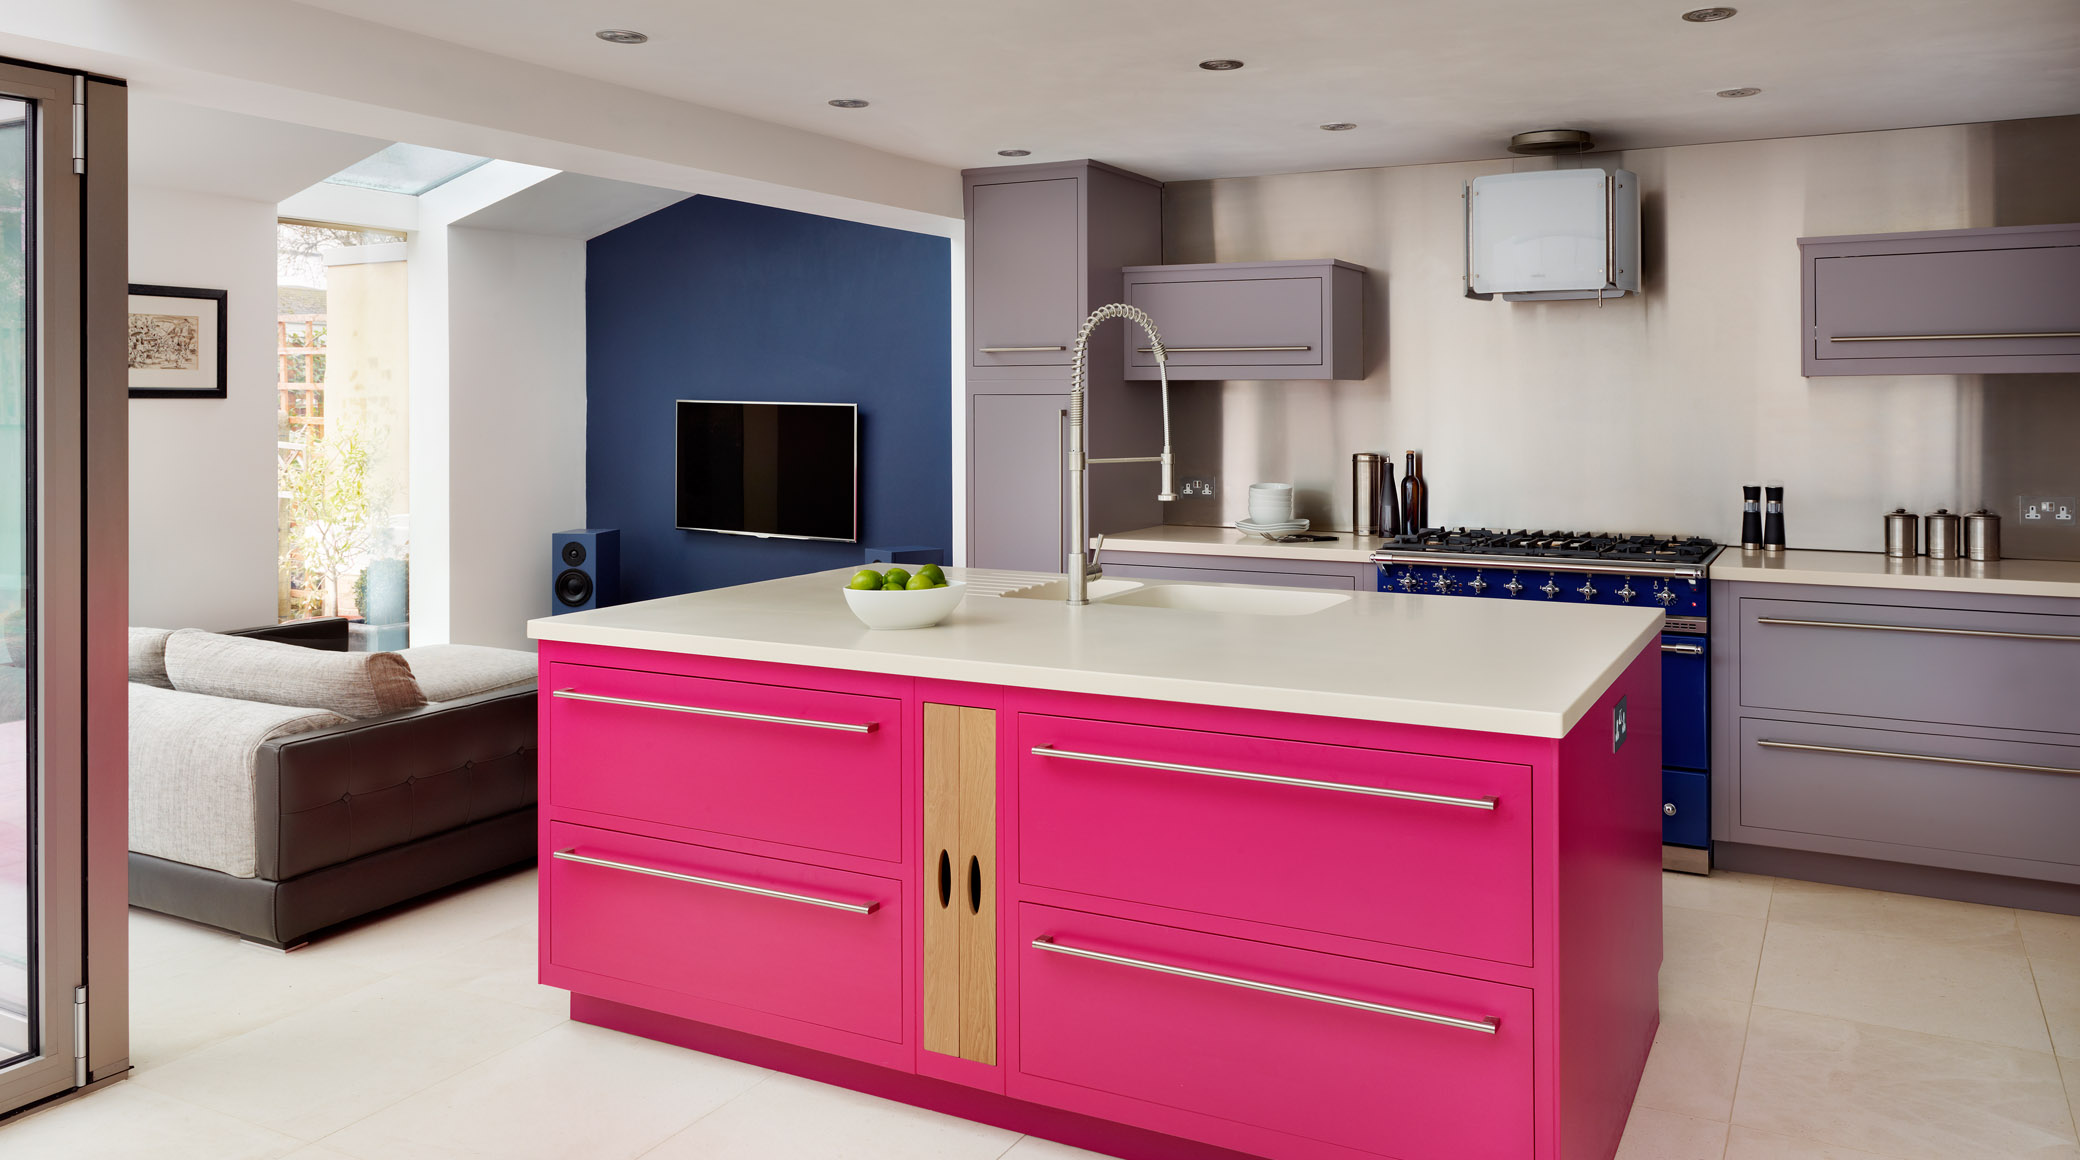 2-pink-flat-tv-island-kitchen | For the Home | Pinterest | Küchen ...